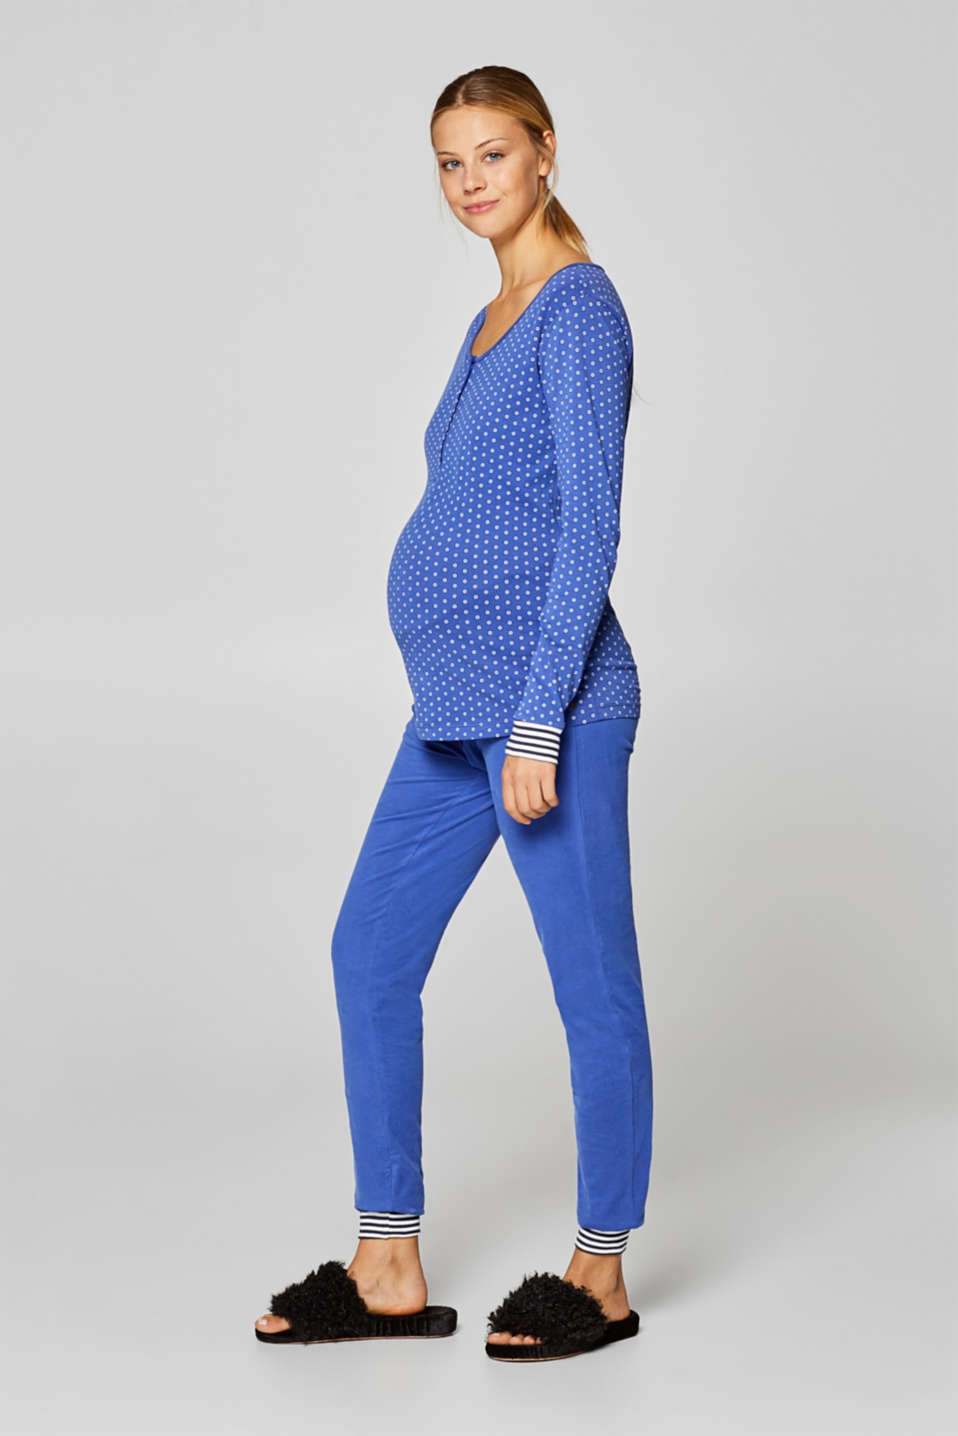 Stretch jersey trousers with an under-bump waistband, LCELECTRIC BLUE, detail image number 1